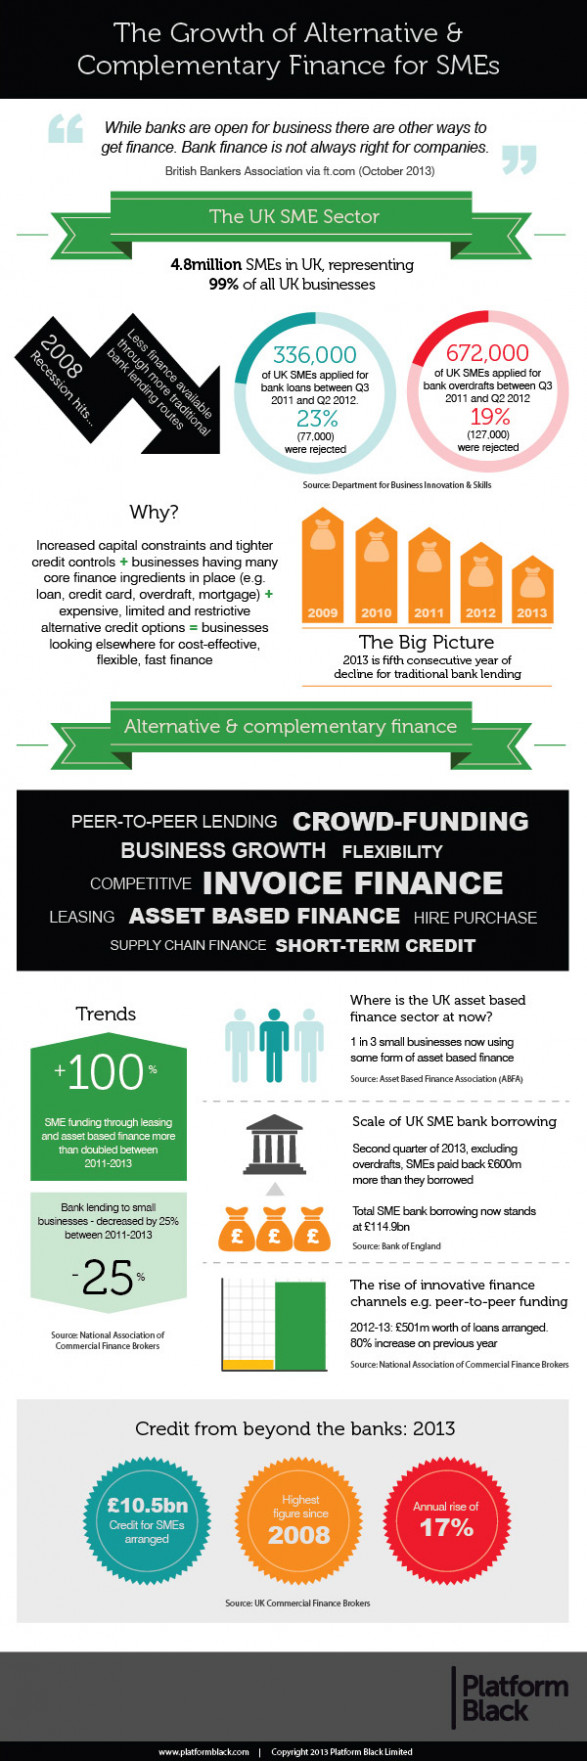 The Growth in Alternative & Complementary Finance